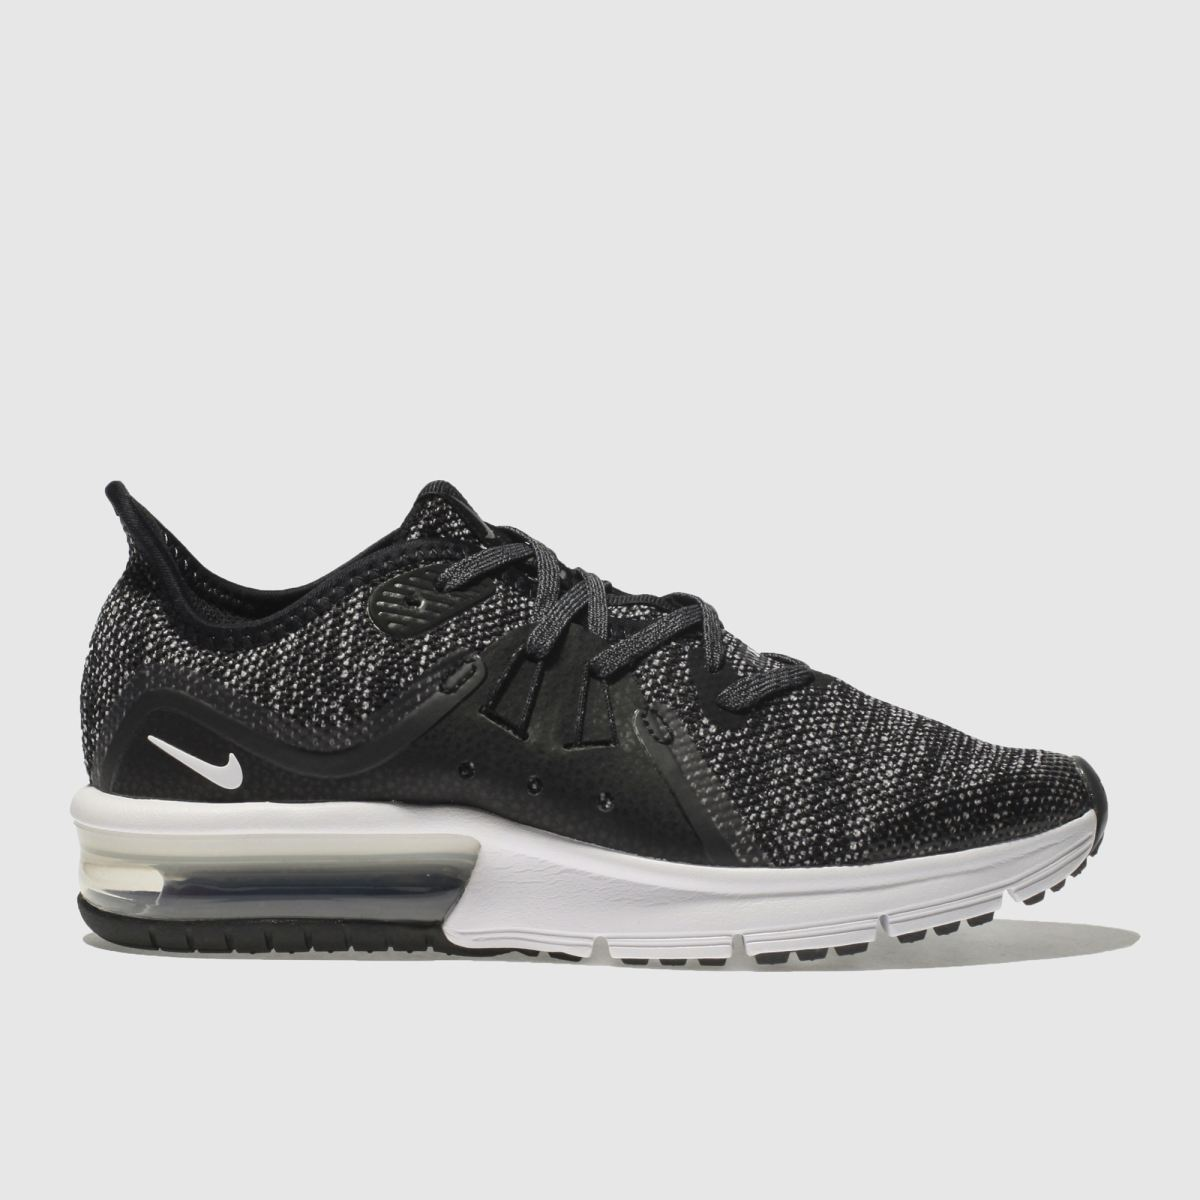 Nike Black & White Air Max Sequent 3 Unisex Youth Youth